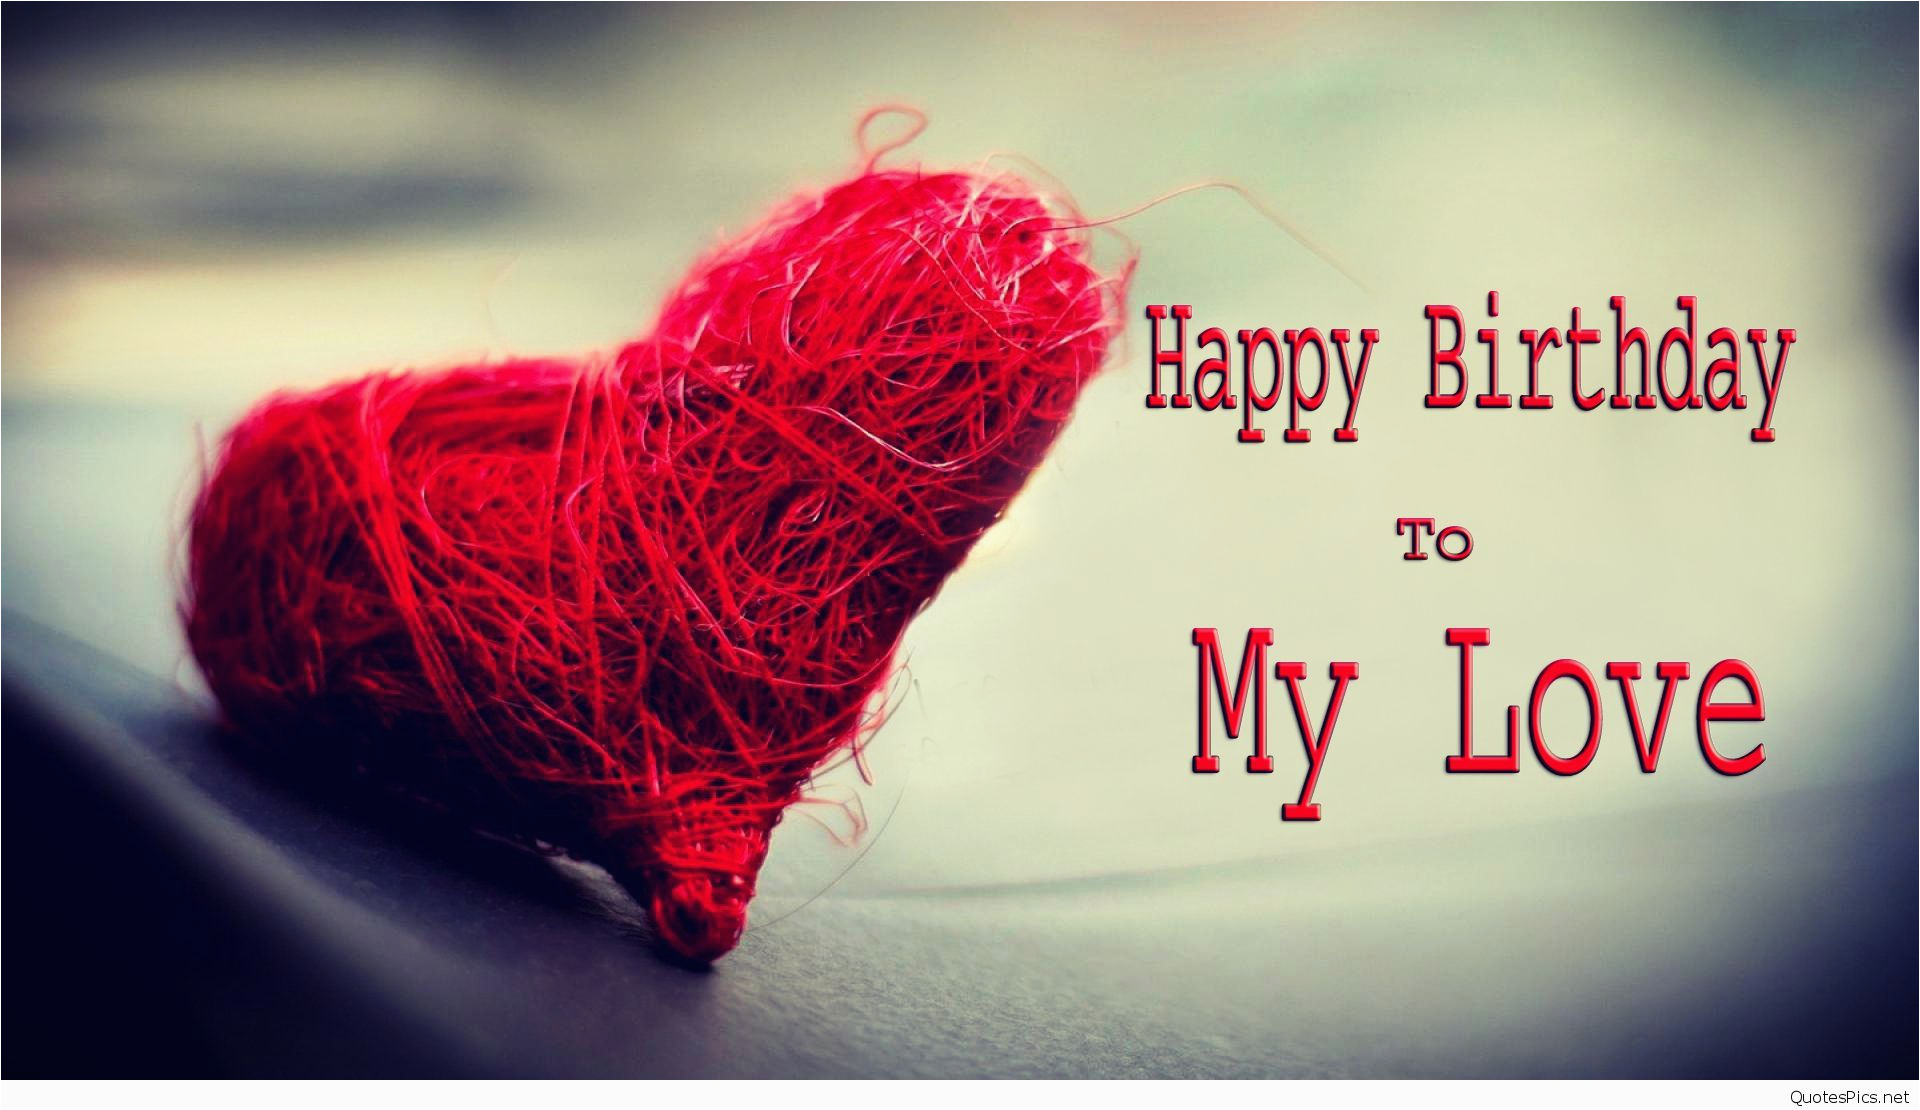 Happy Birthday My Love Quotes Sayings Love Happy Birthday Wishes Cards Sayings